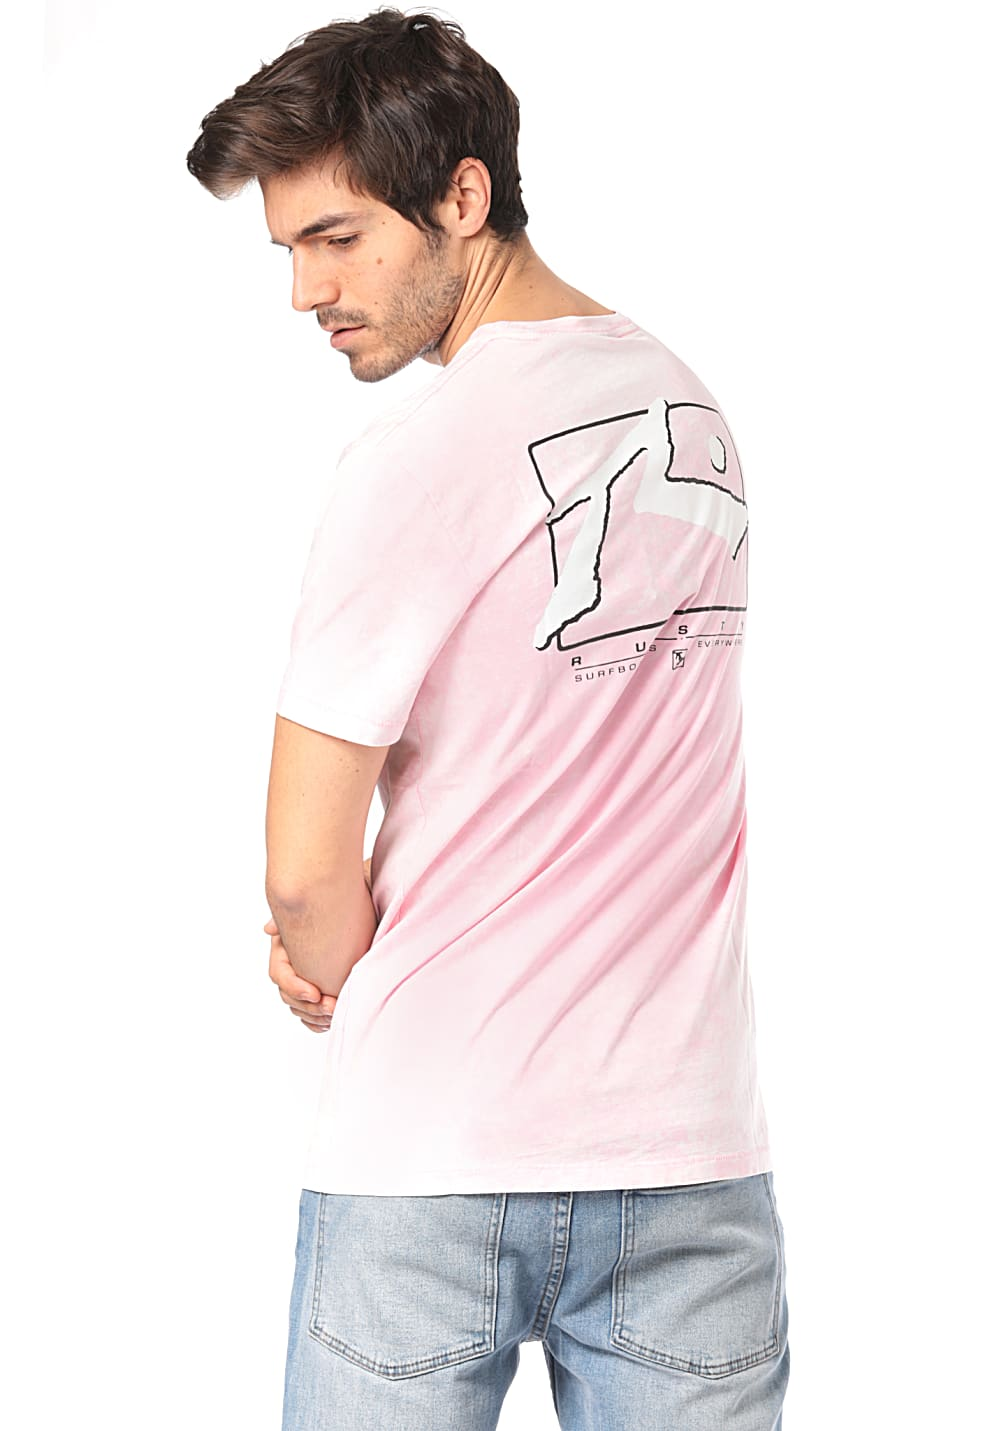 Rusty Wash TV Screen 7 - T-Shirt für Herren Pink